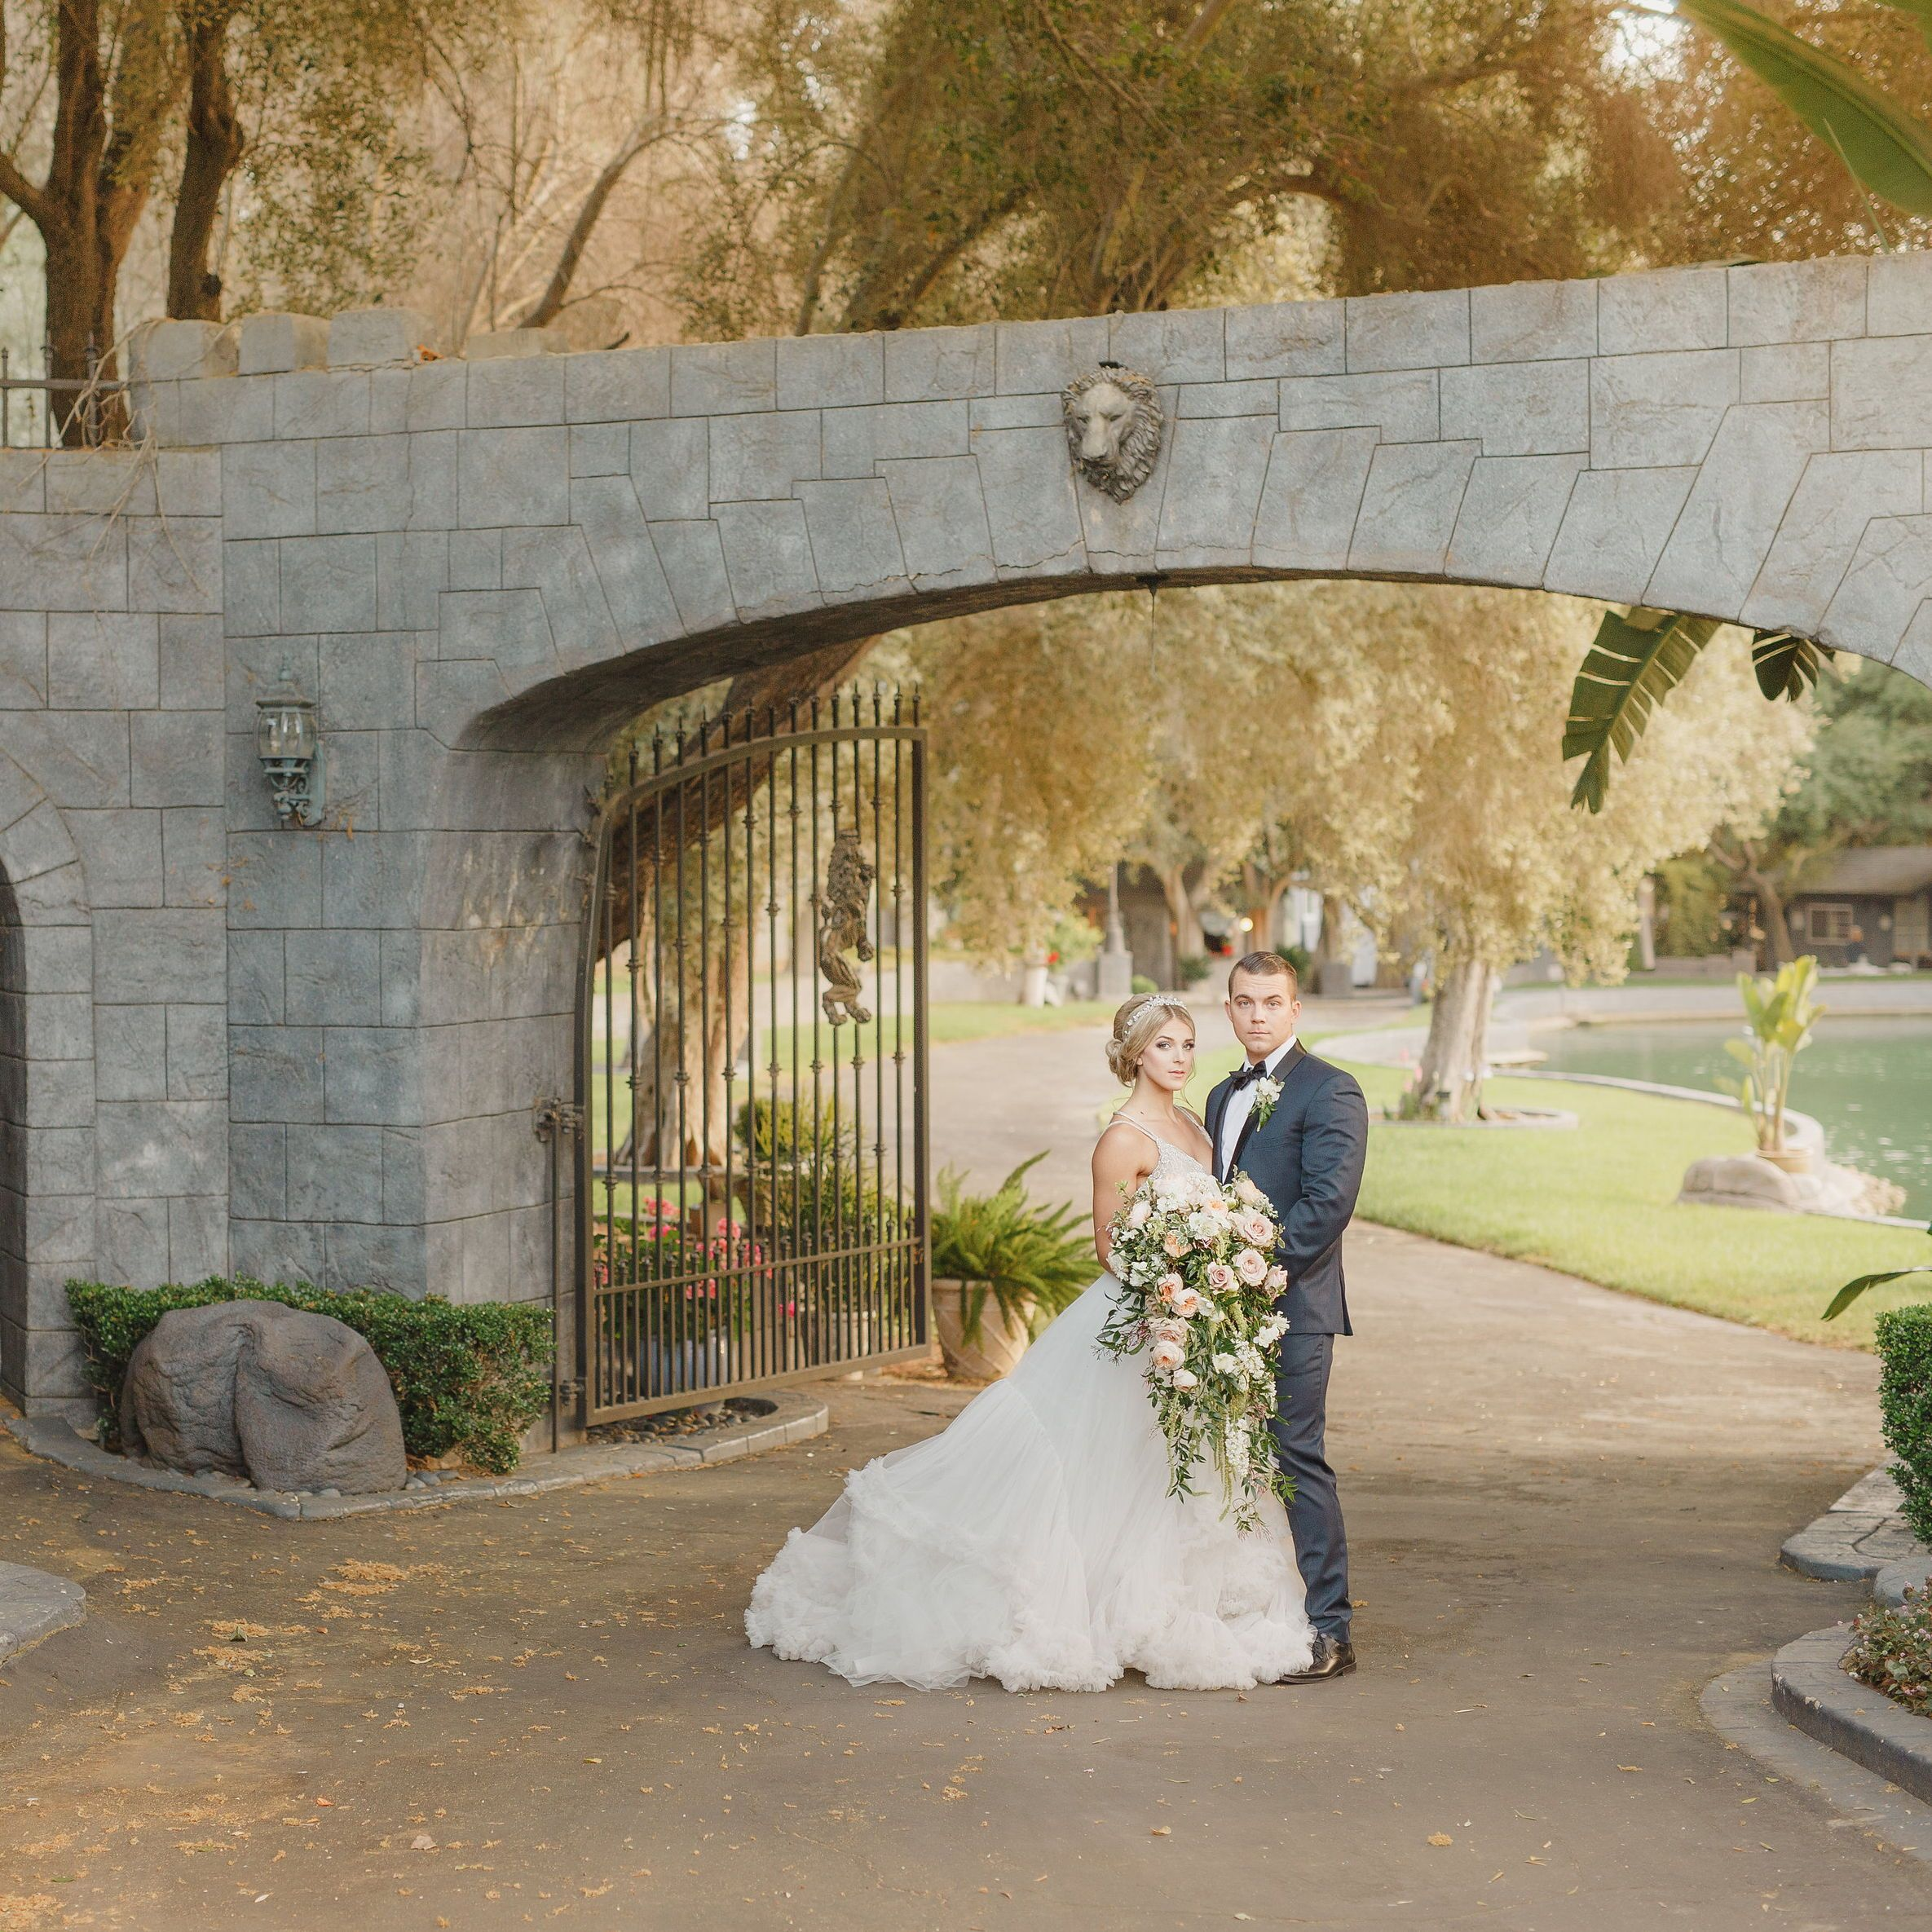 The most magical wedding venue in Southern California. The